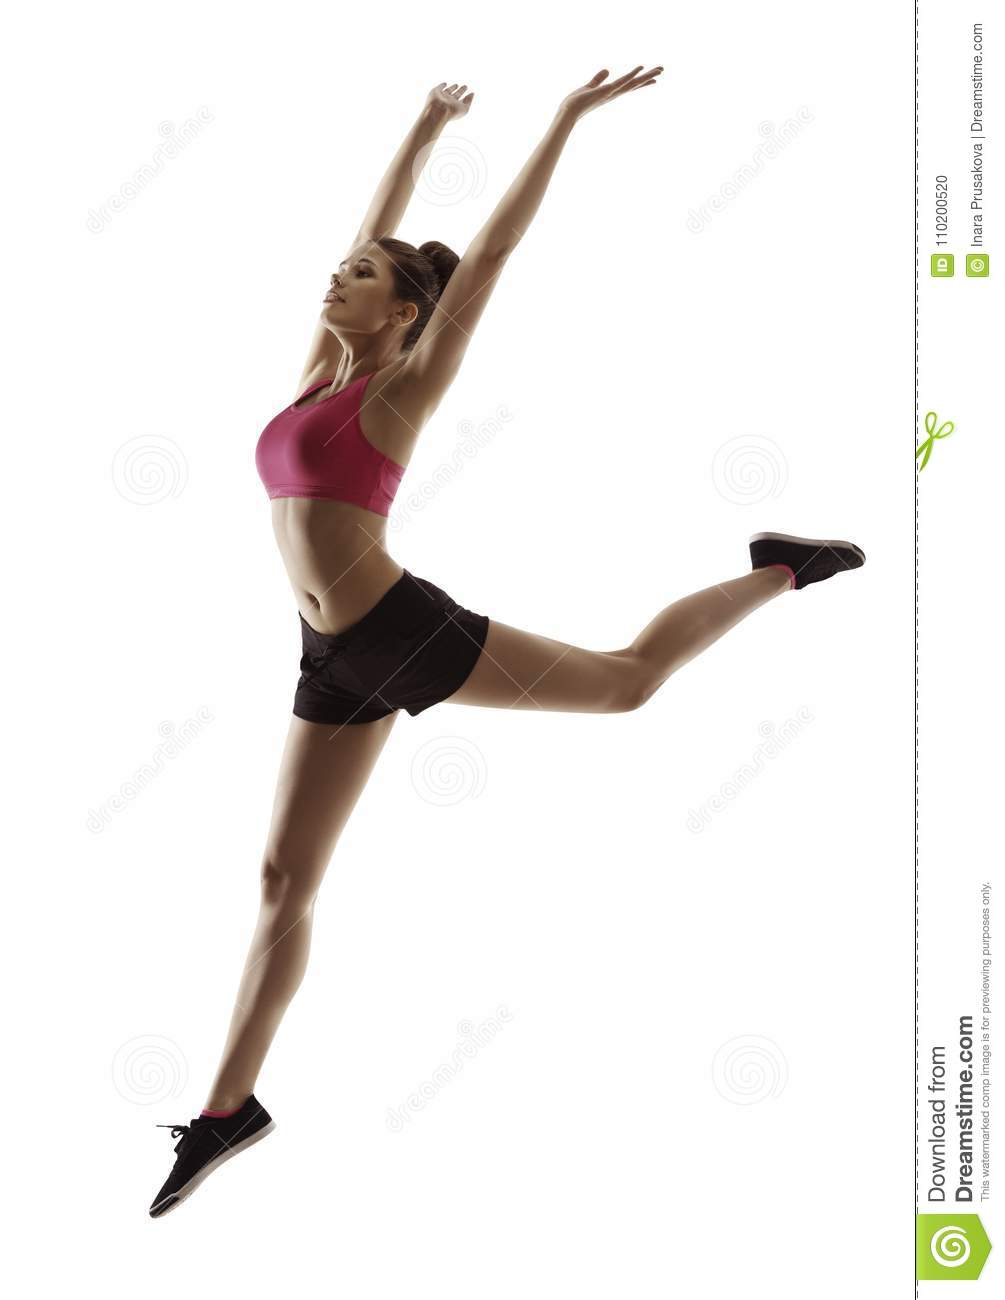 Fitness Woman Jump Gymnastics, Sport Exercise Jumping Girl on White